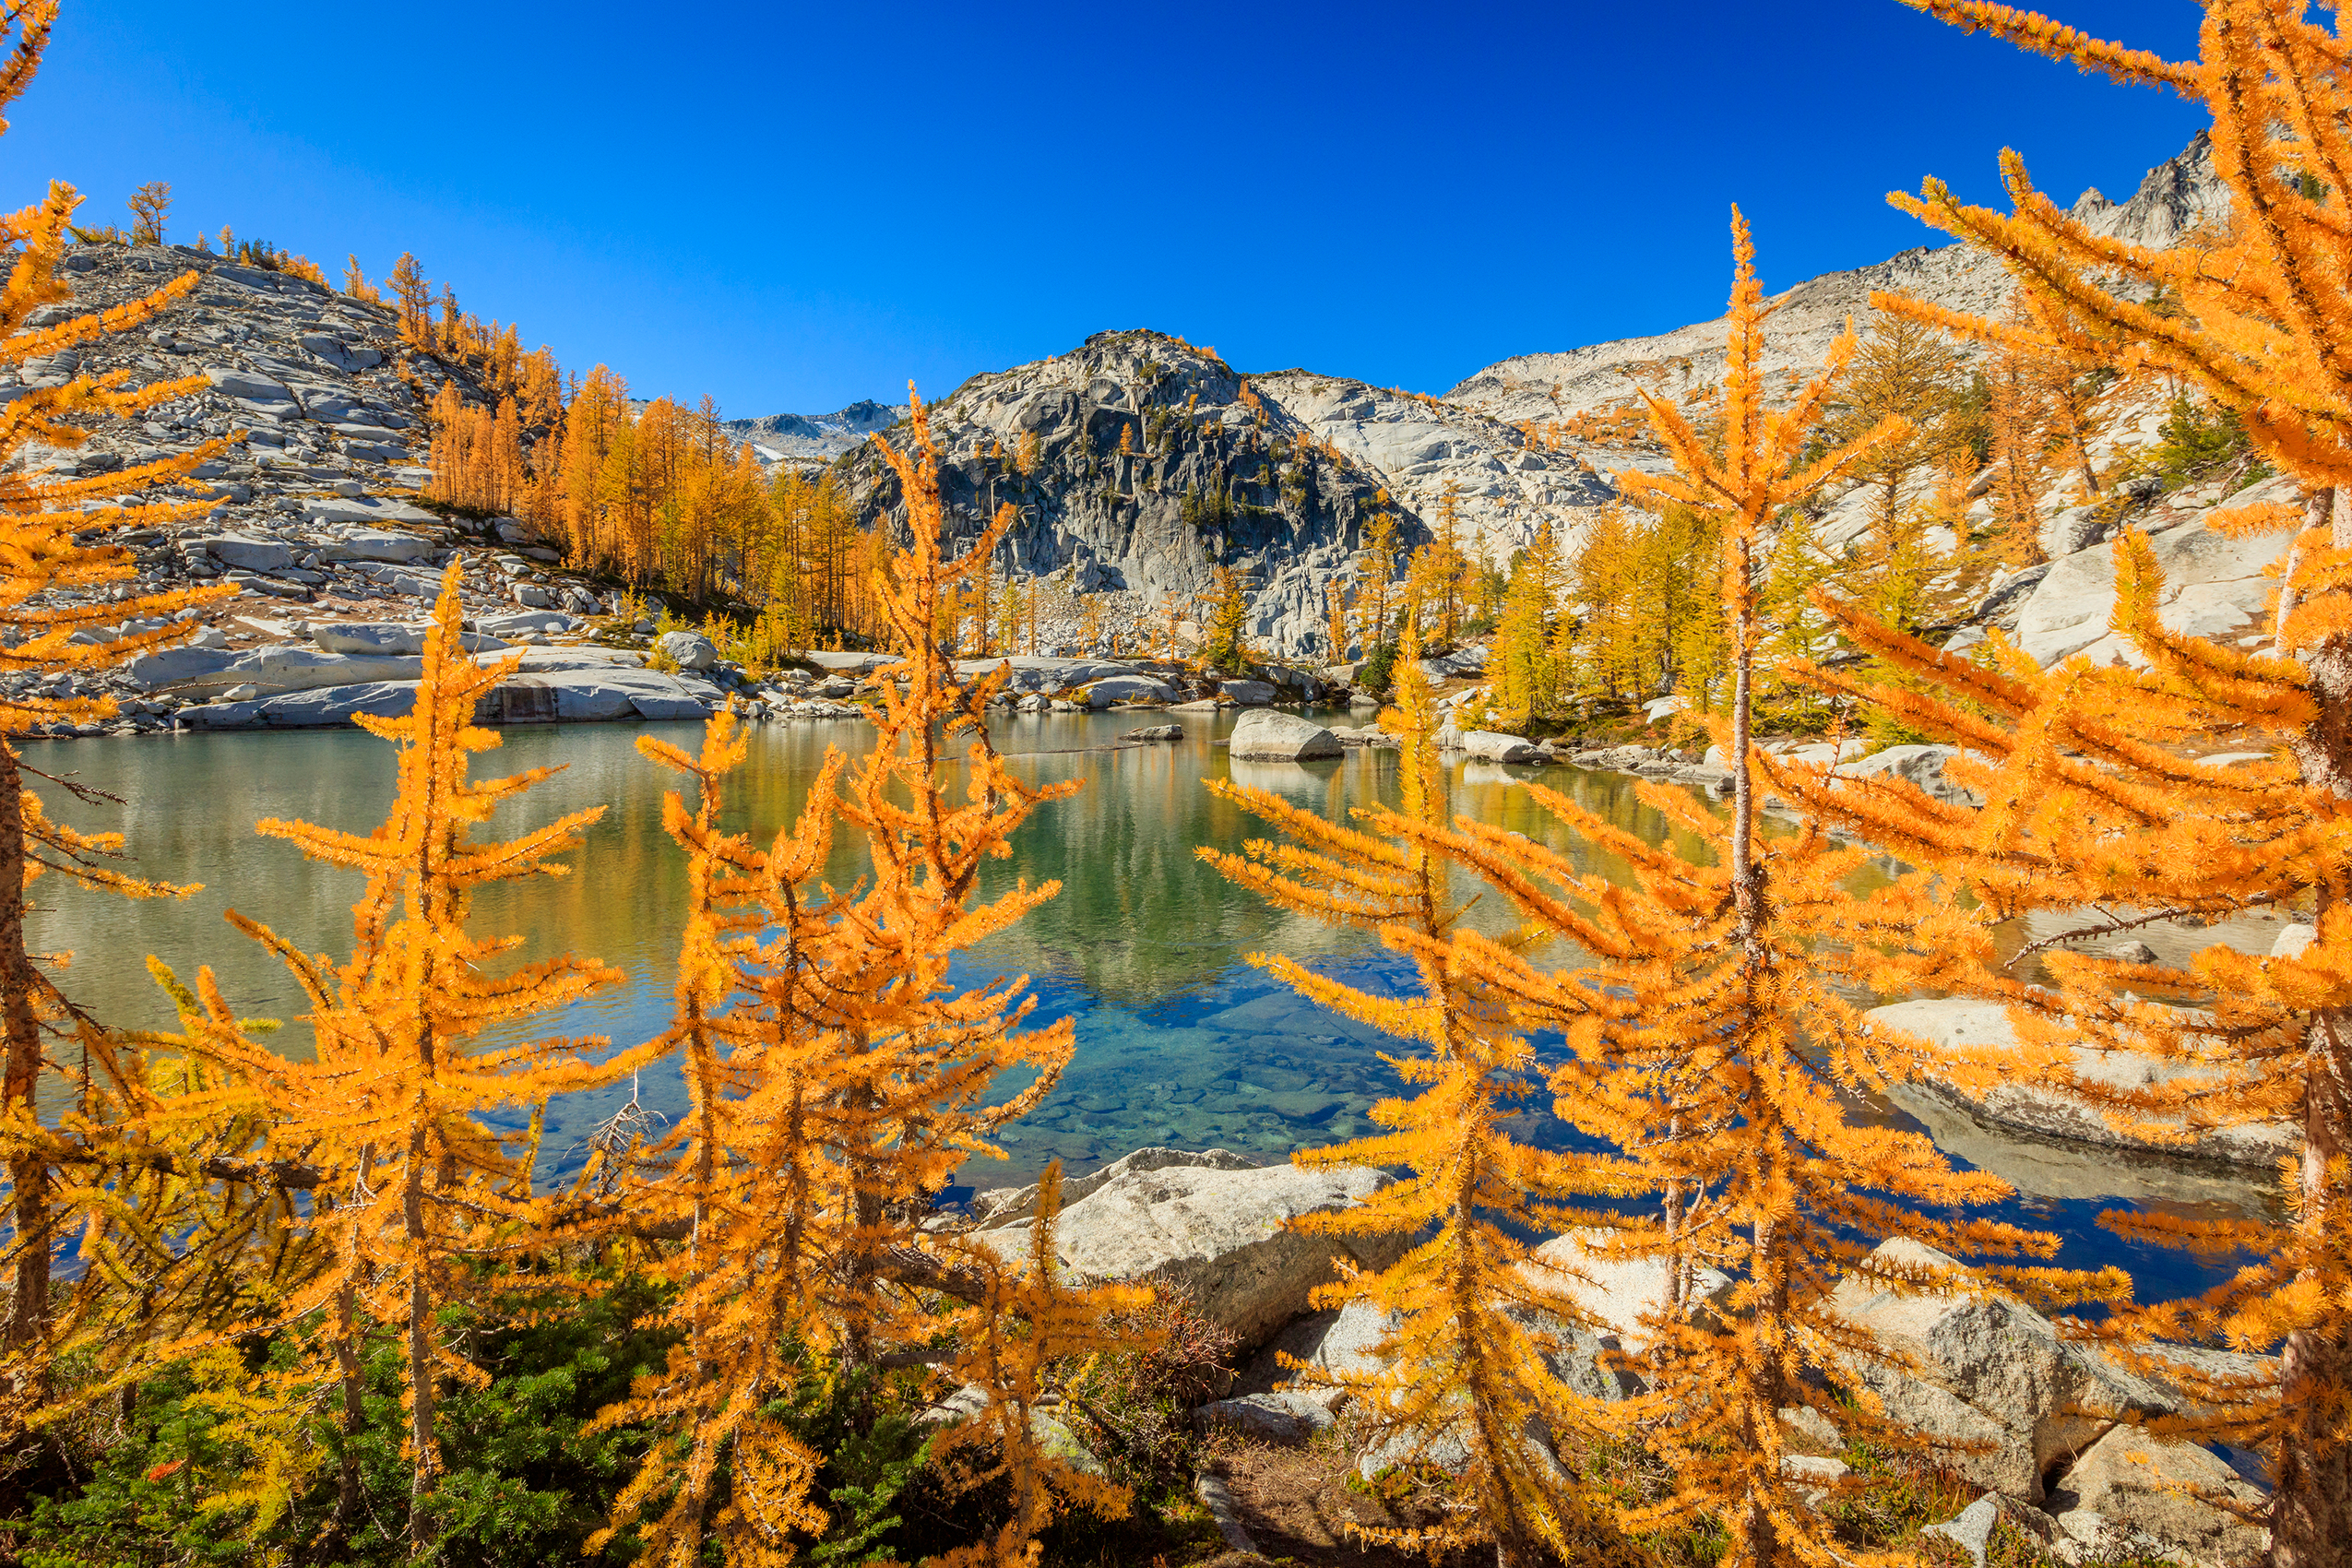 Bright-orange trees that look like conifers (but are not) surround an alpine lake surrounded by mountains on a clear, blue day.